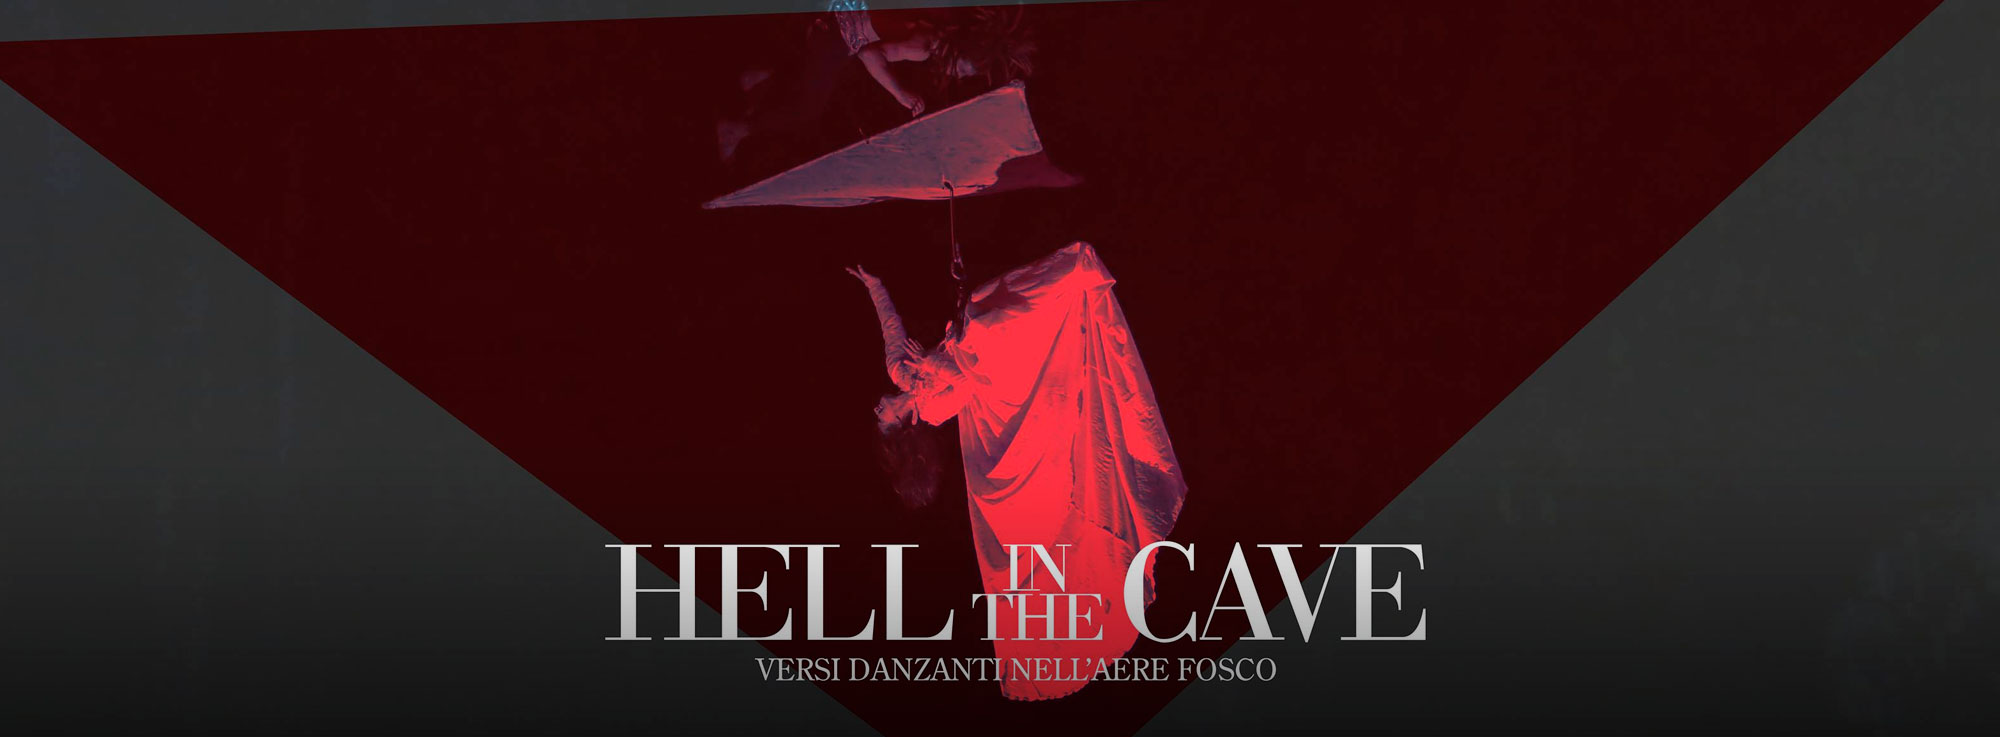 Castellana Grotte: Hell in the Cave - Versi danzanti nell'aere fosco